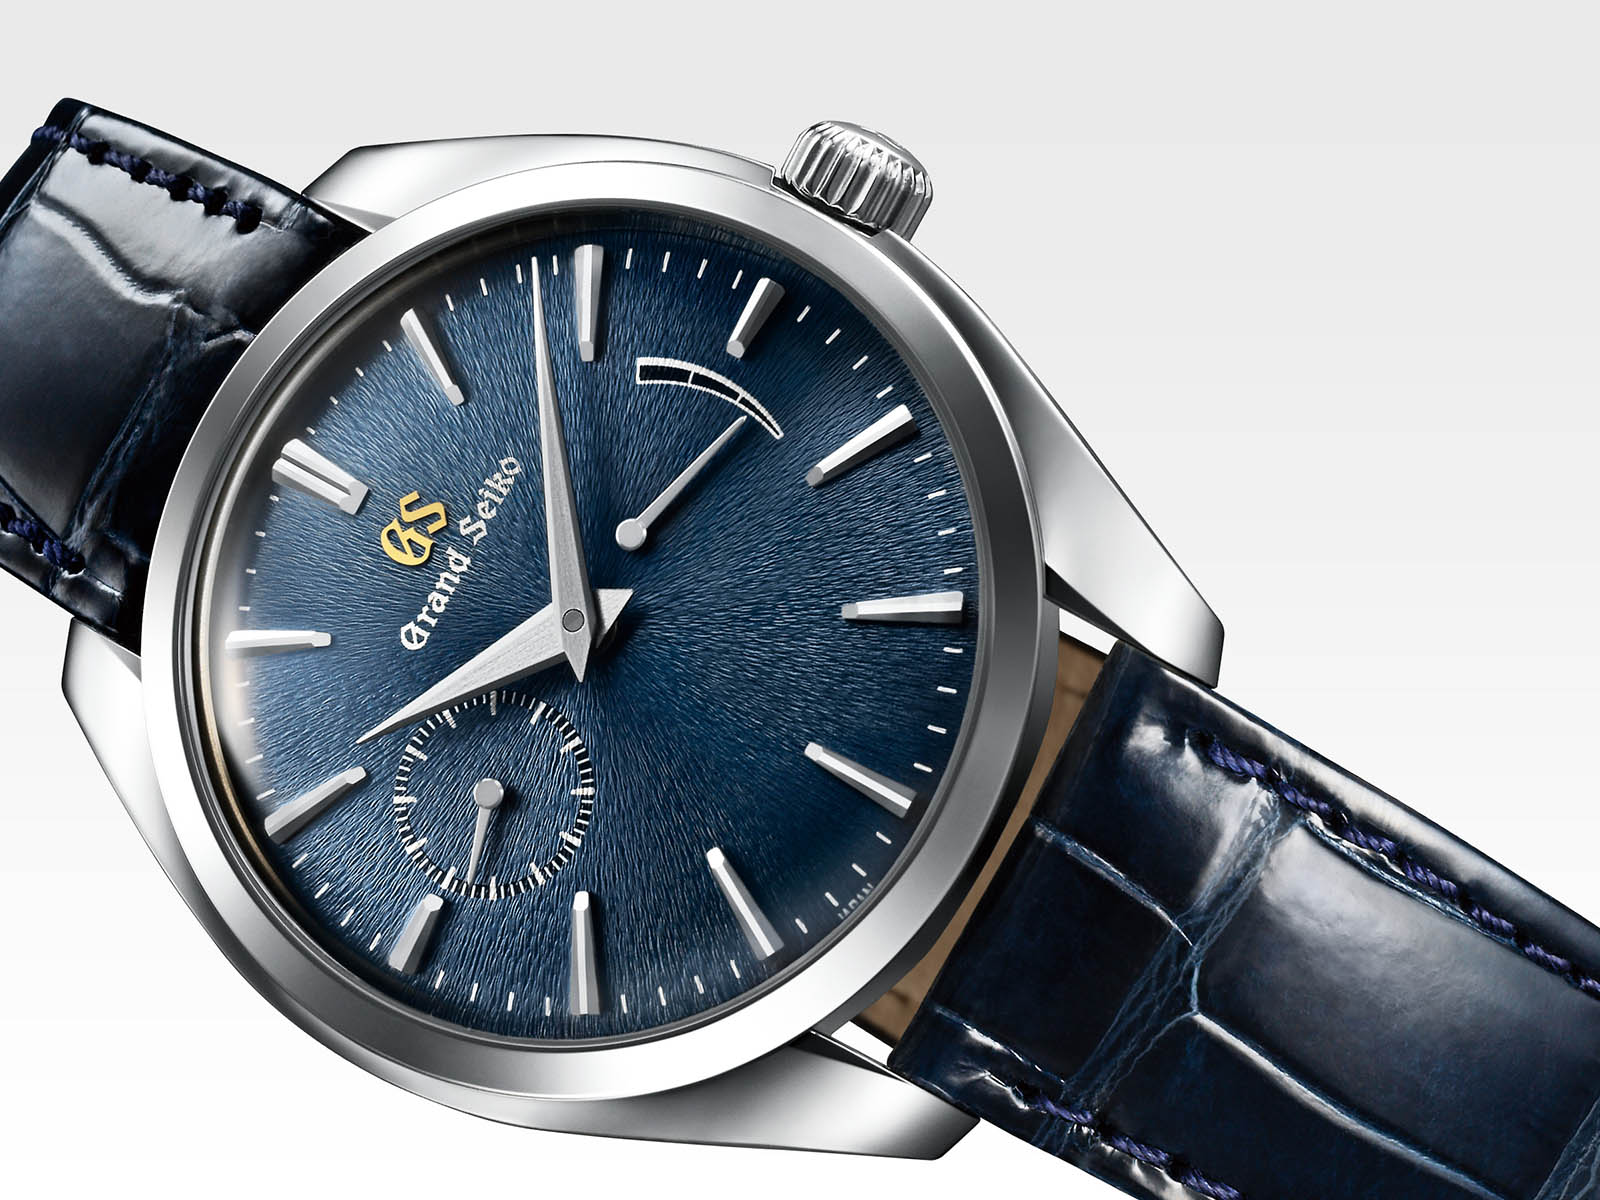 sbgk005-grand-seiko-elegance-collection-2.jpg